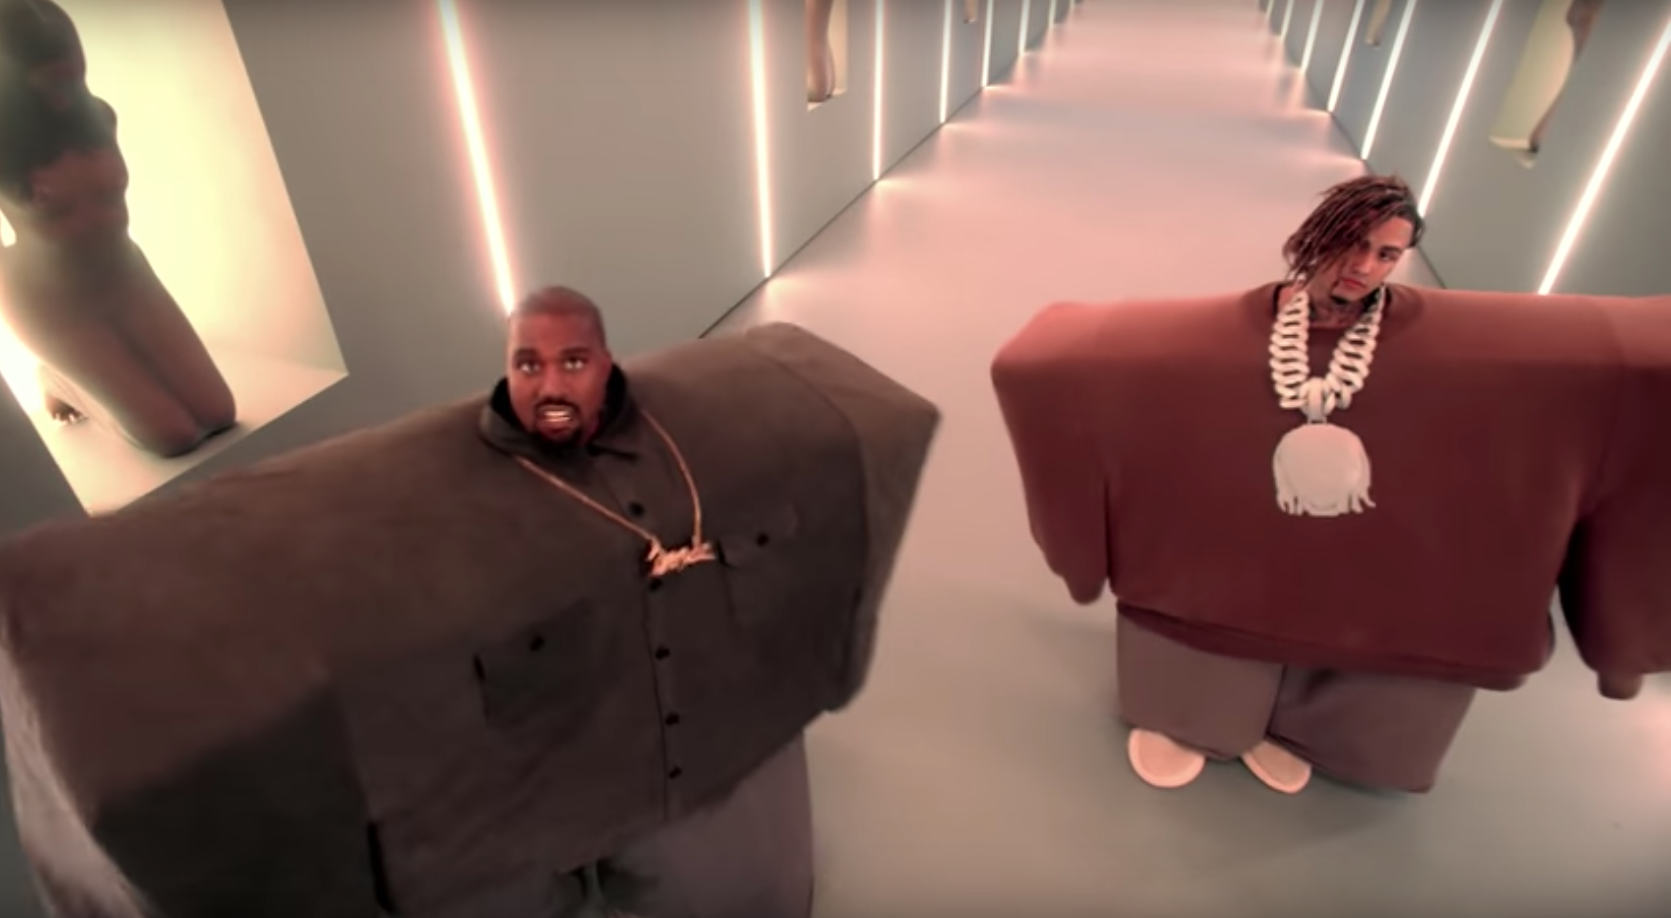 Kanye West Lil Pump Get Raunchy In Cartoonish I Love It Video Lil Pump Kanye West Celebrity Inspired Outfits